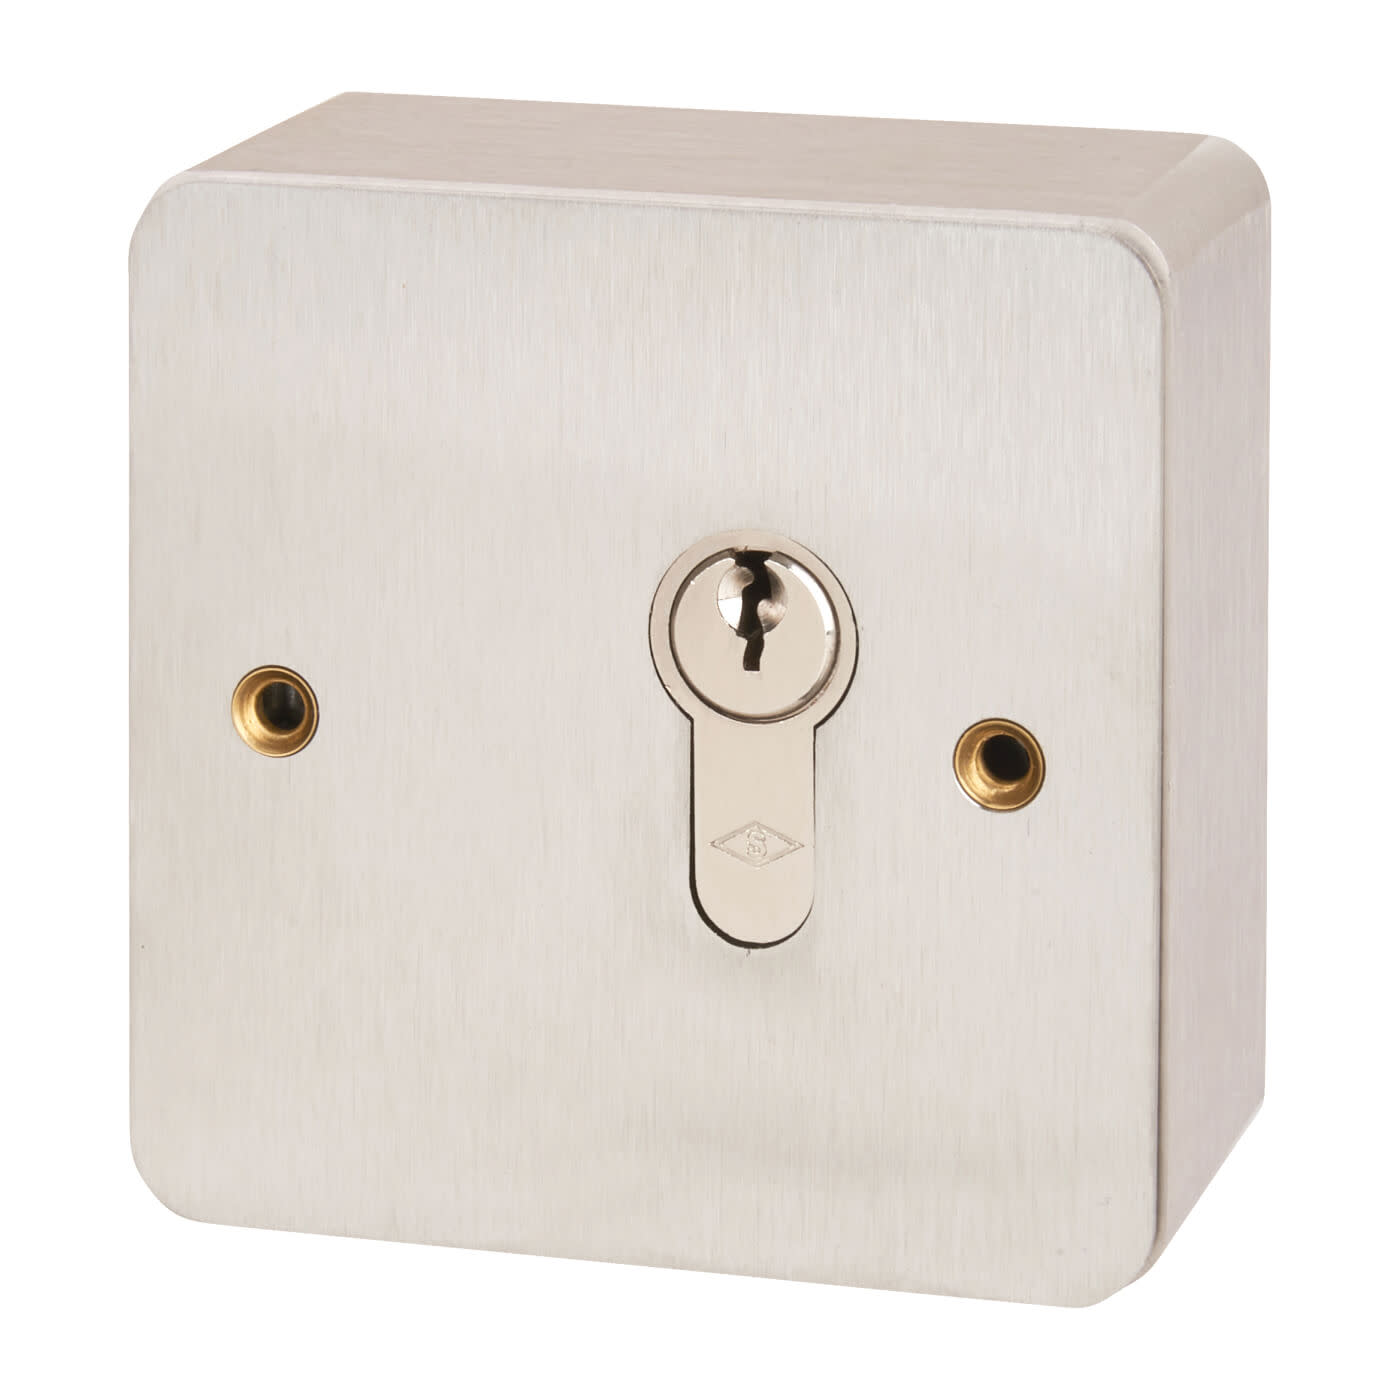 Key Switch - 85 x 85mm - Stainless Steel)